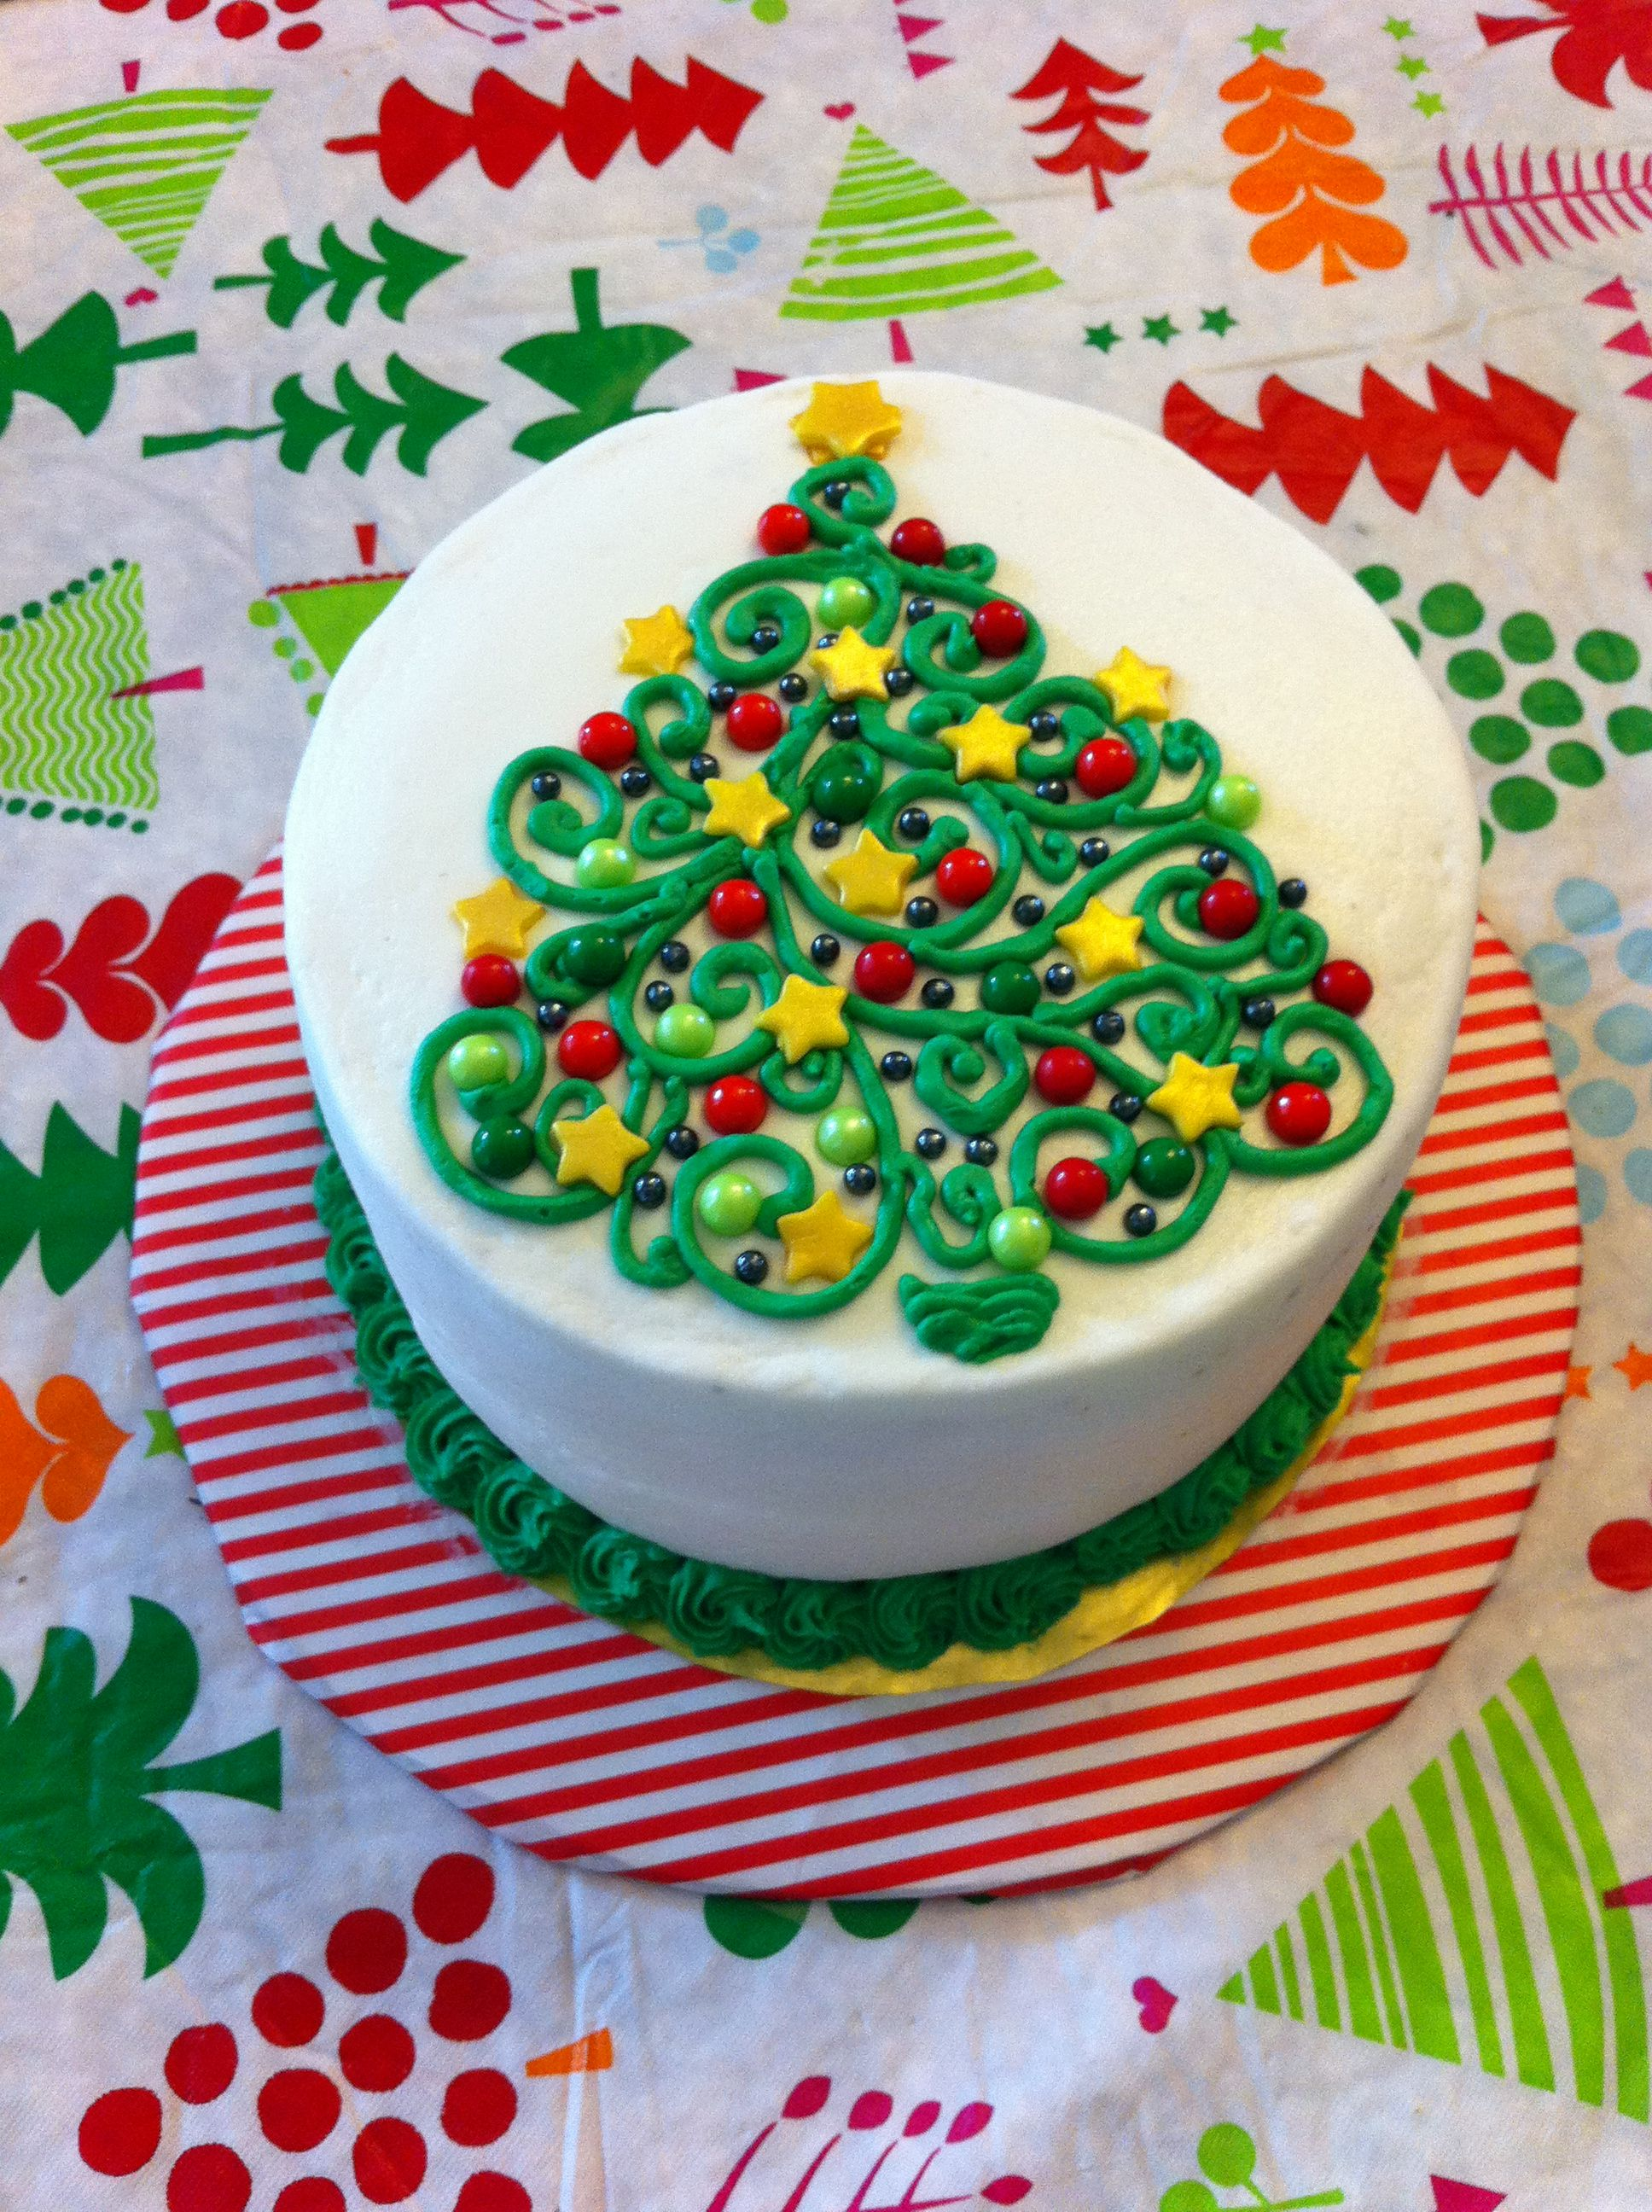 Swirly Christmas Tree Cake Christmas Easy Cake Decorating Christmas Cake Decorations Winter Cake